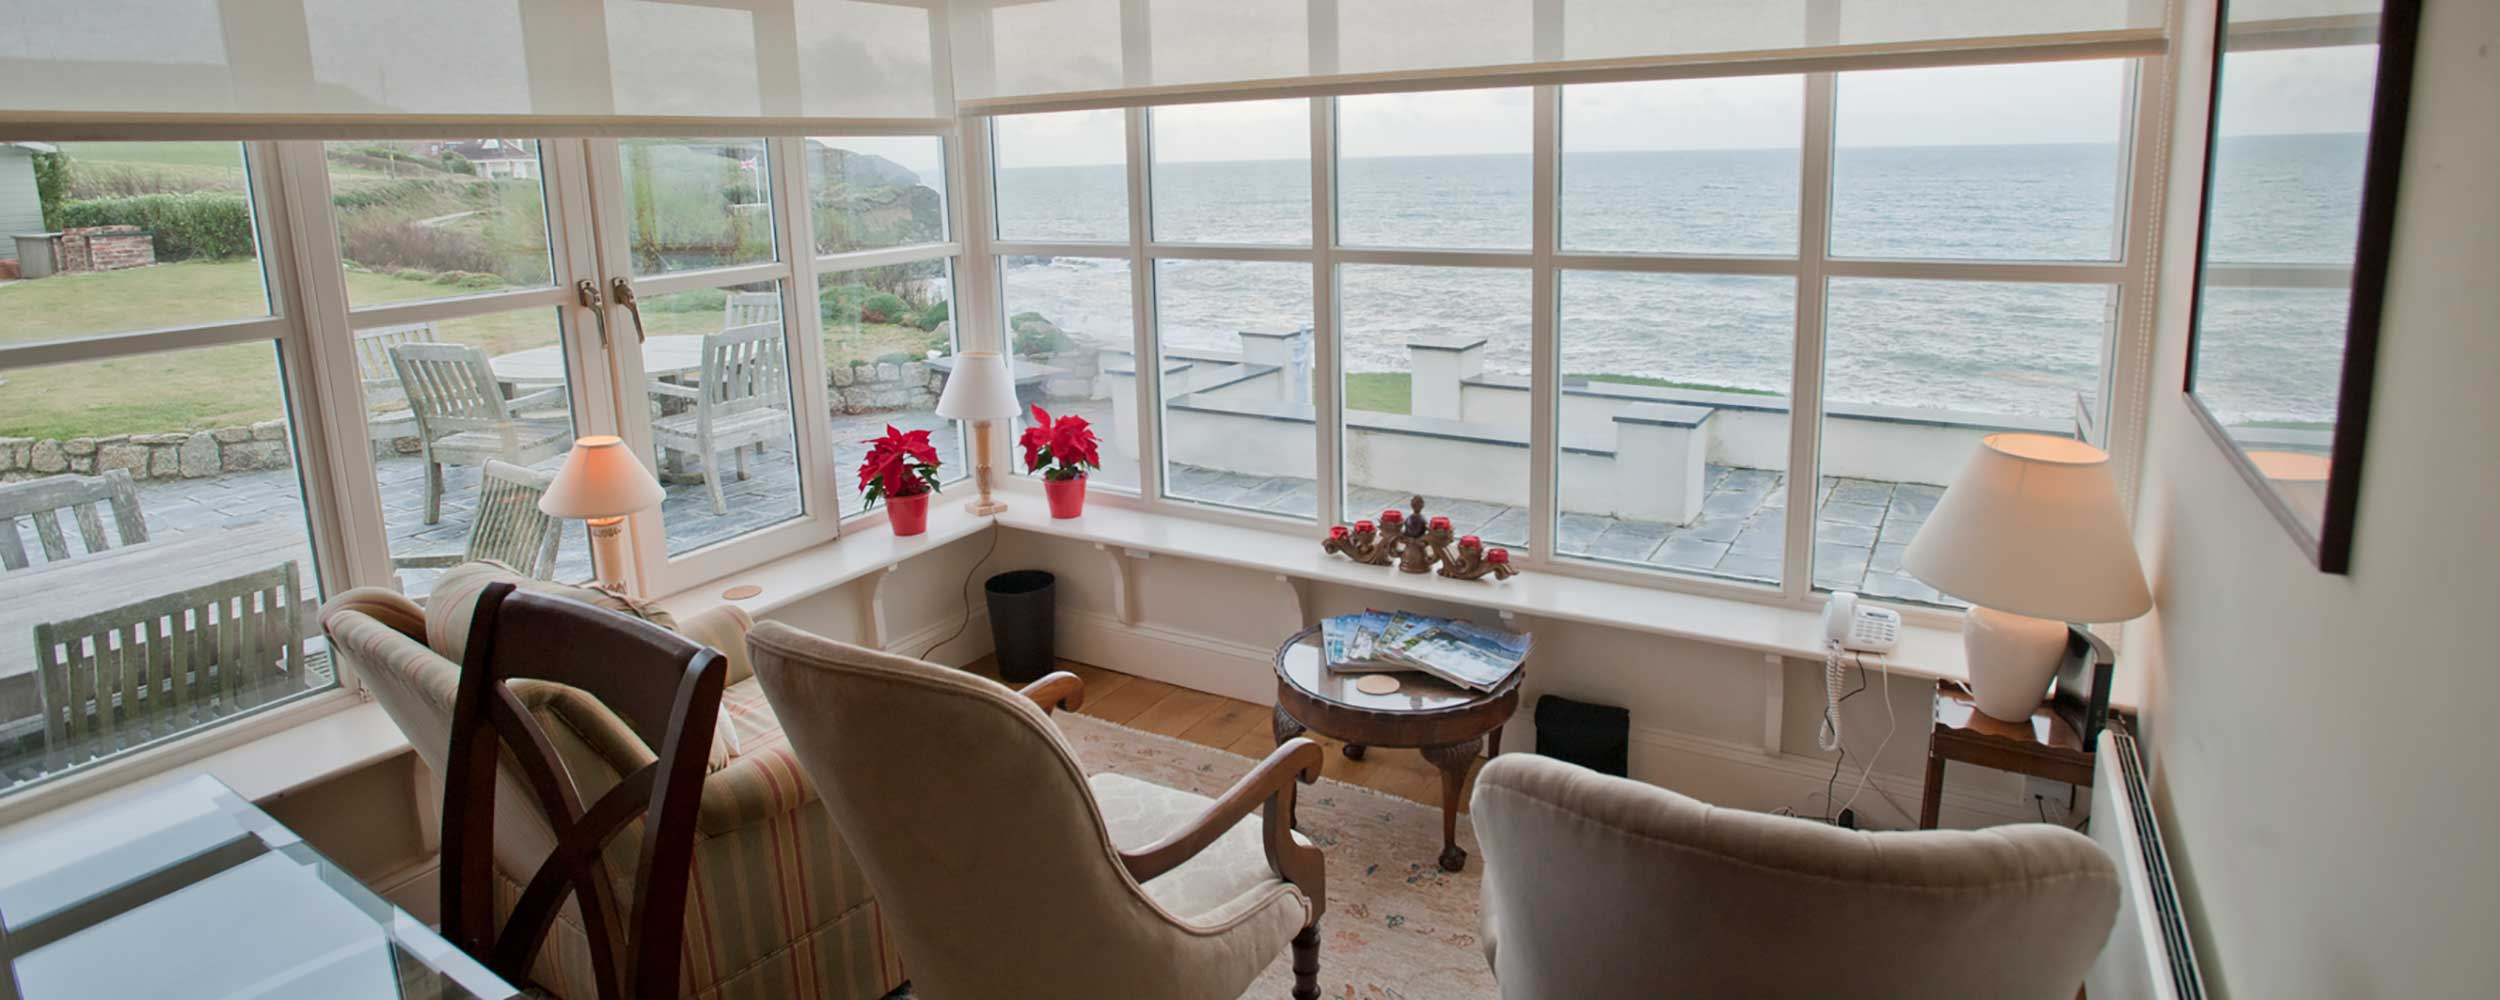 Sea views from the terraces